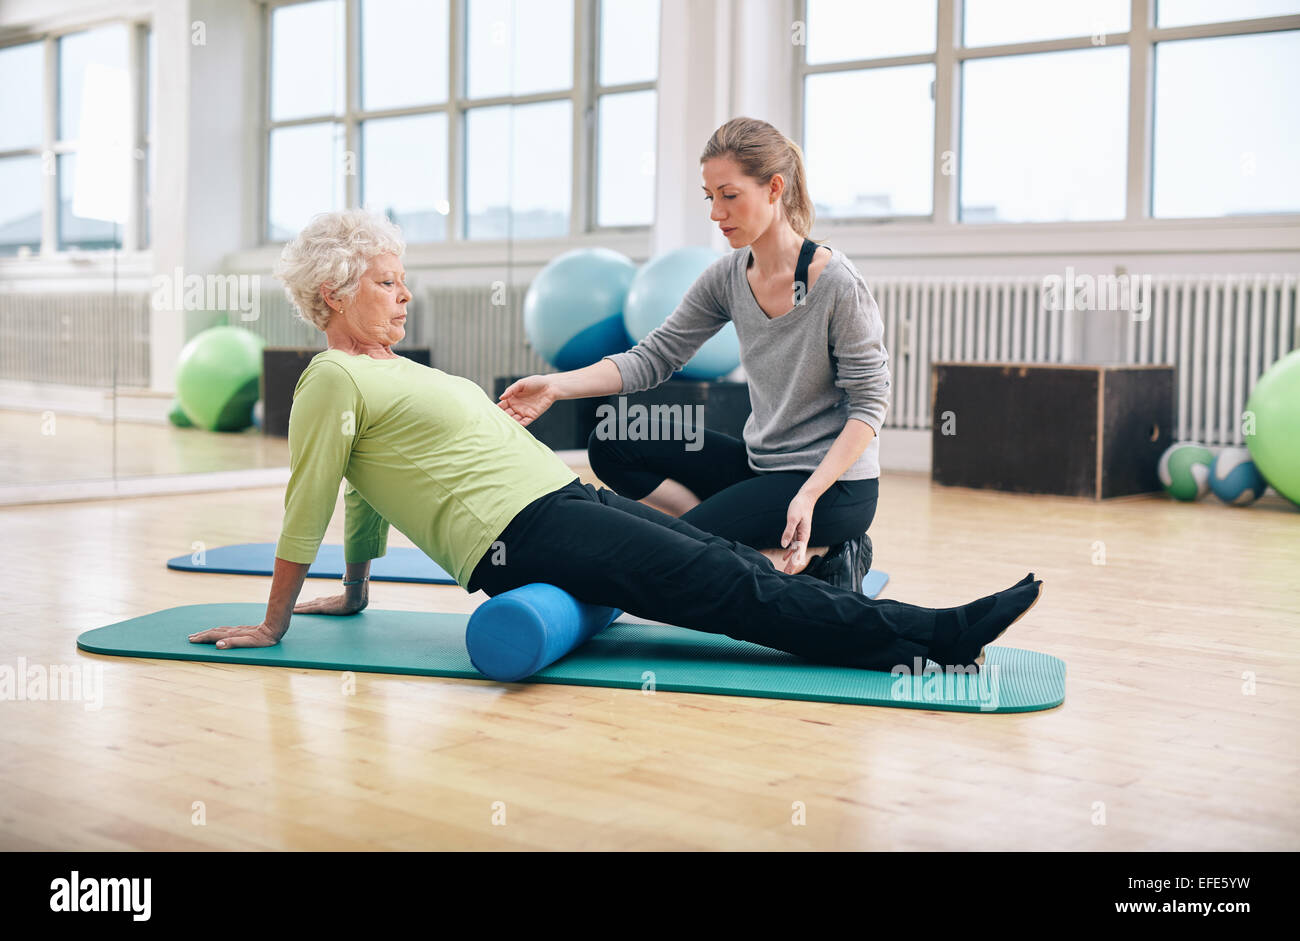 Physical therapist working with active senior woman at rehab. Old woman exercising using foam roller with personal - Stock Image